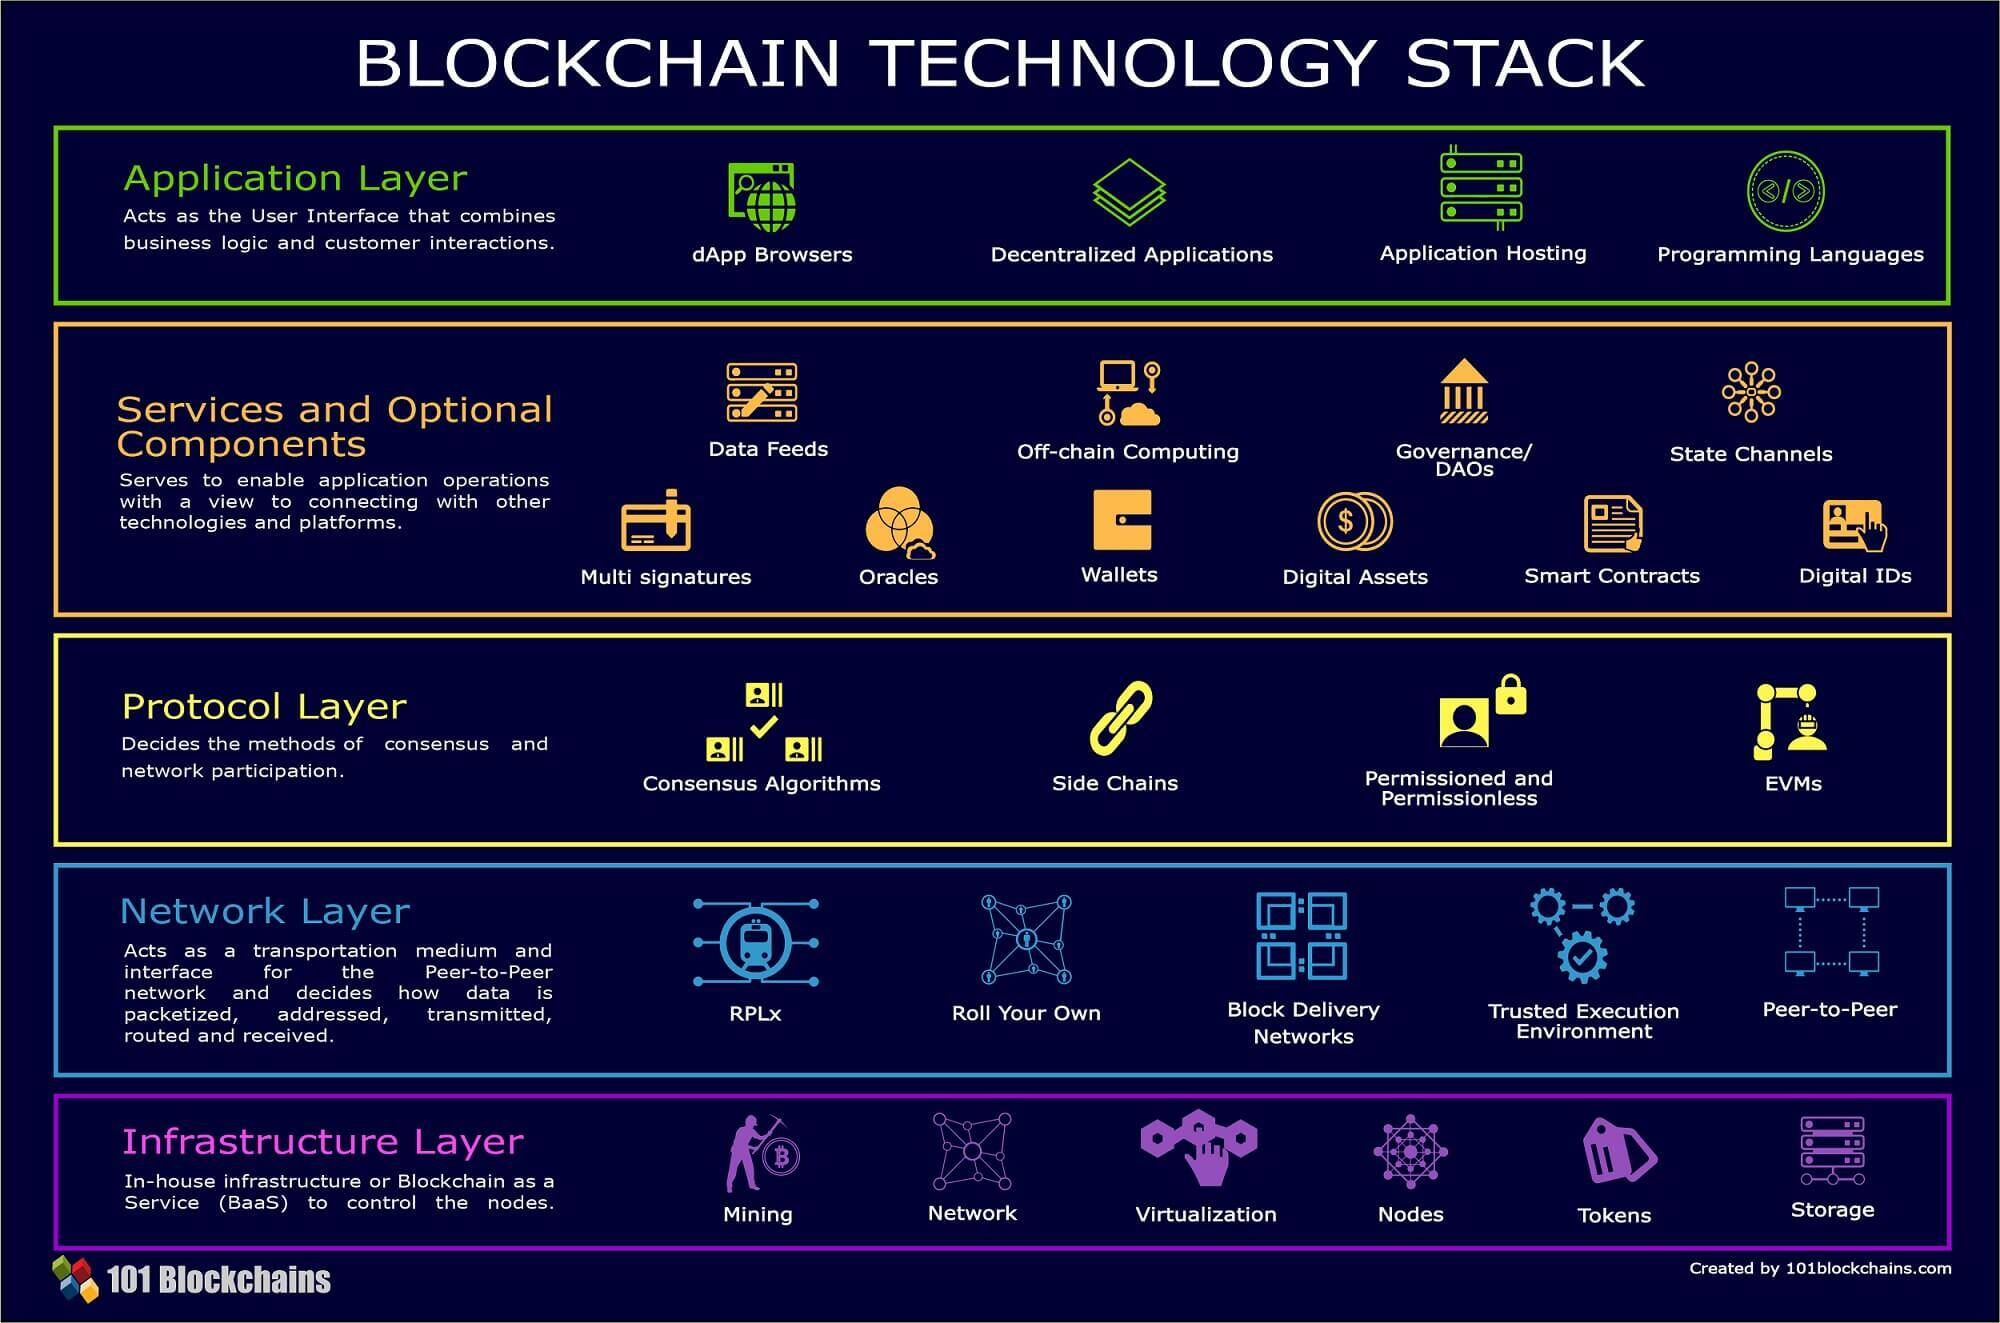 Blockchain Technology Stack